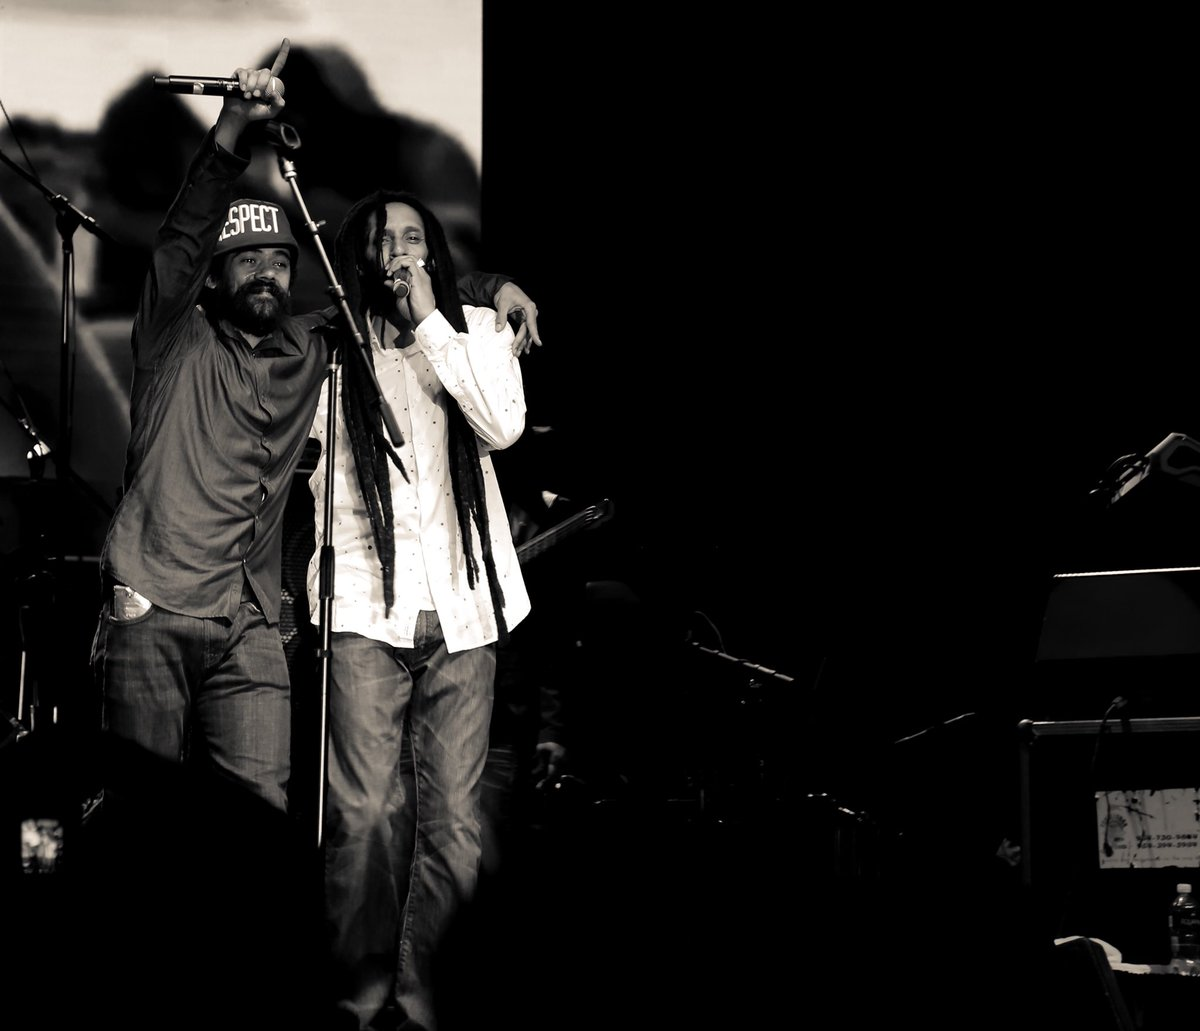 Long Live The Royal!!! Blessed Earthstrong to my bro @JulianMarley!!!